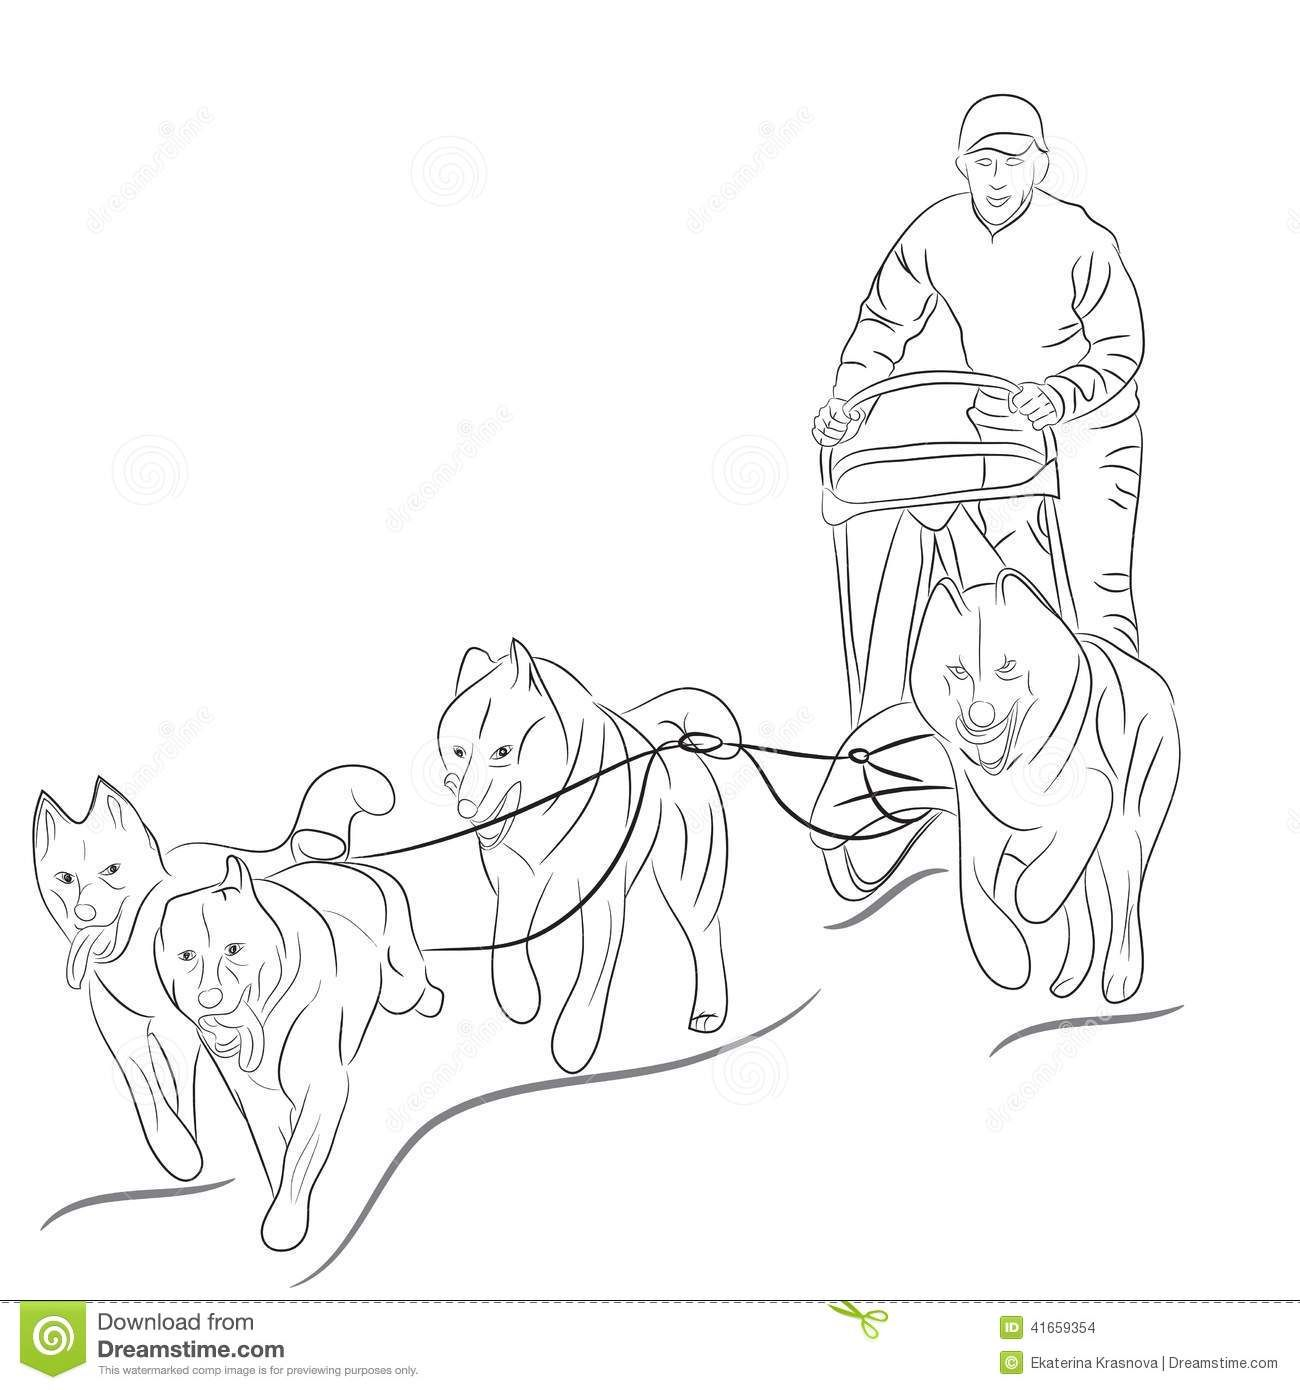 Hand Drawn Illustration Of Dogs Pulling A Sled